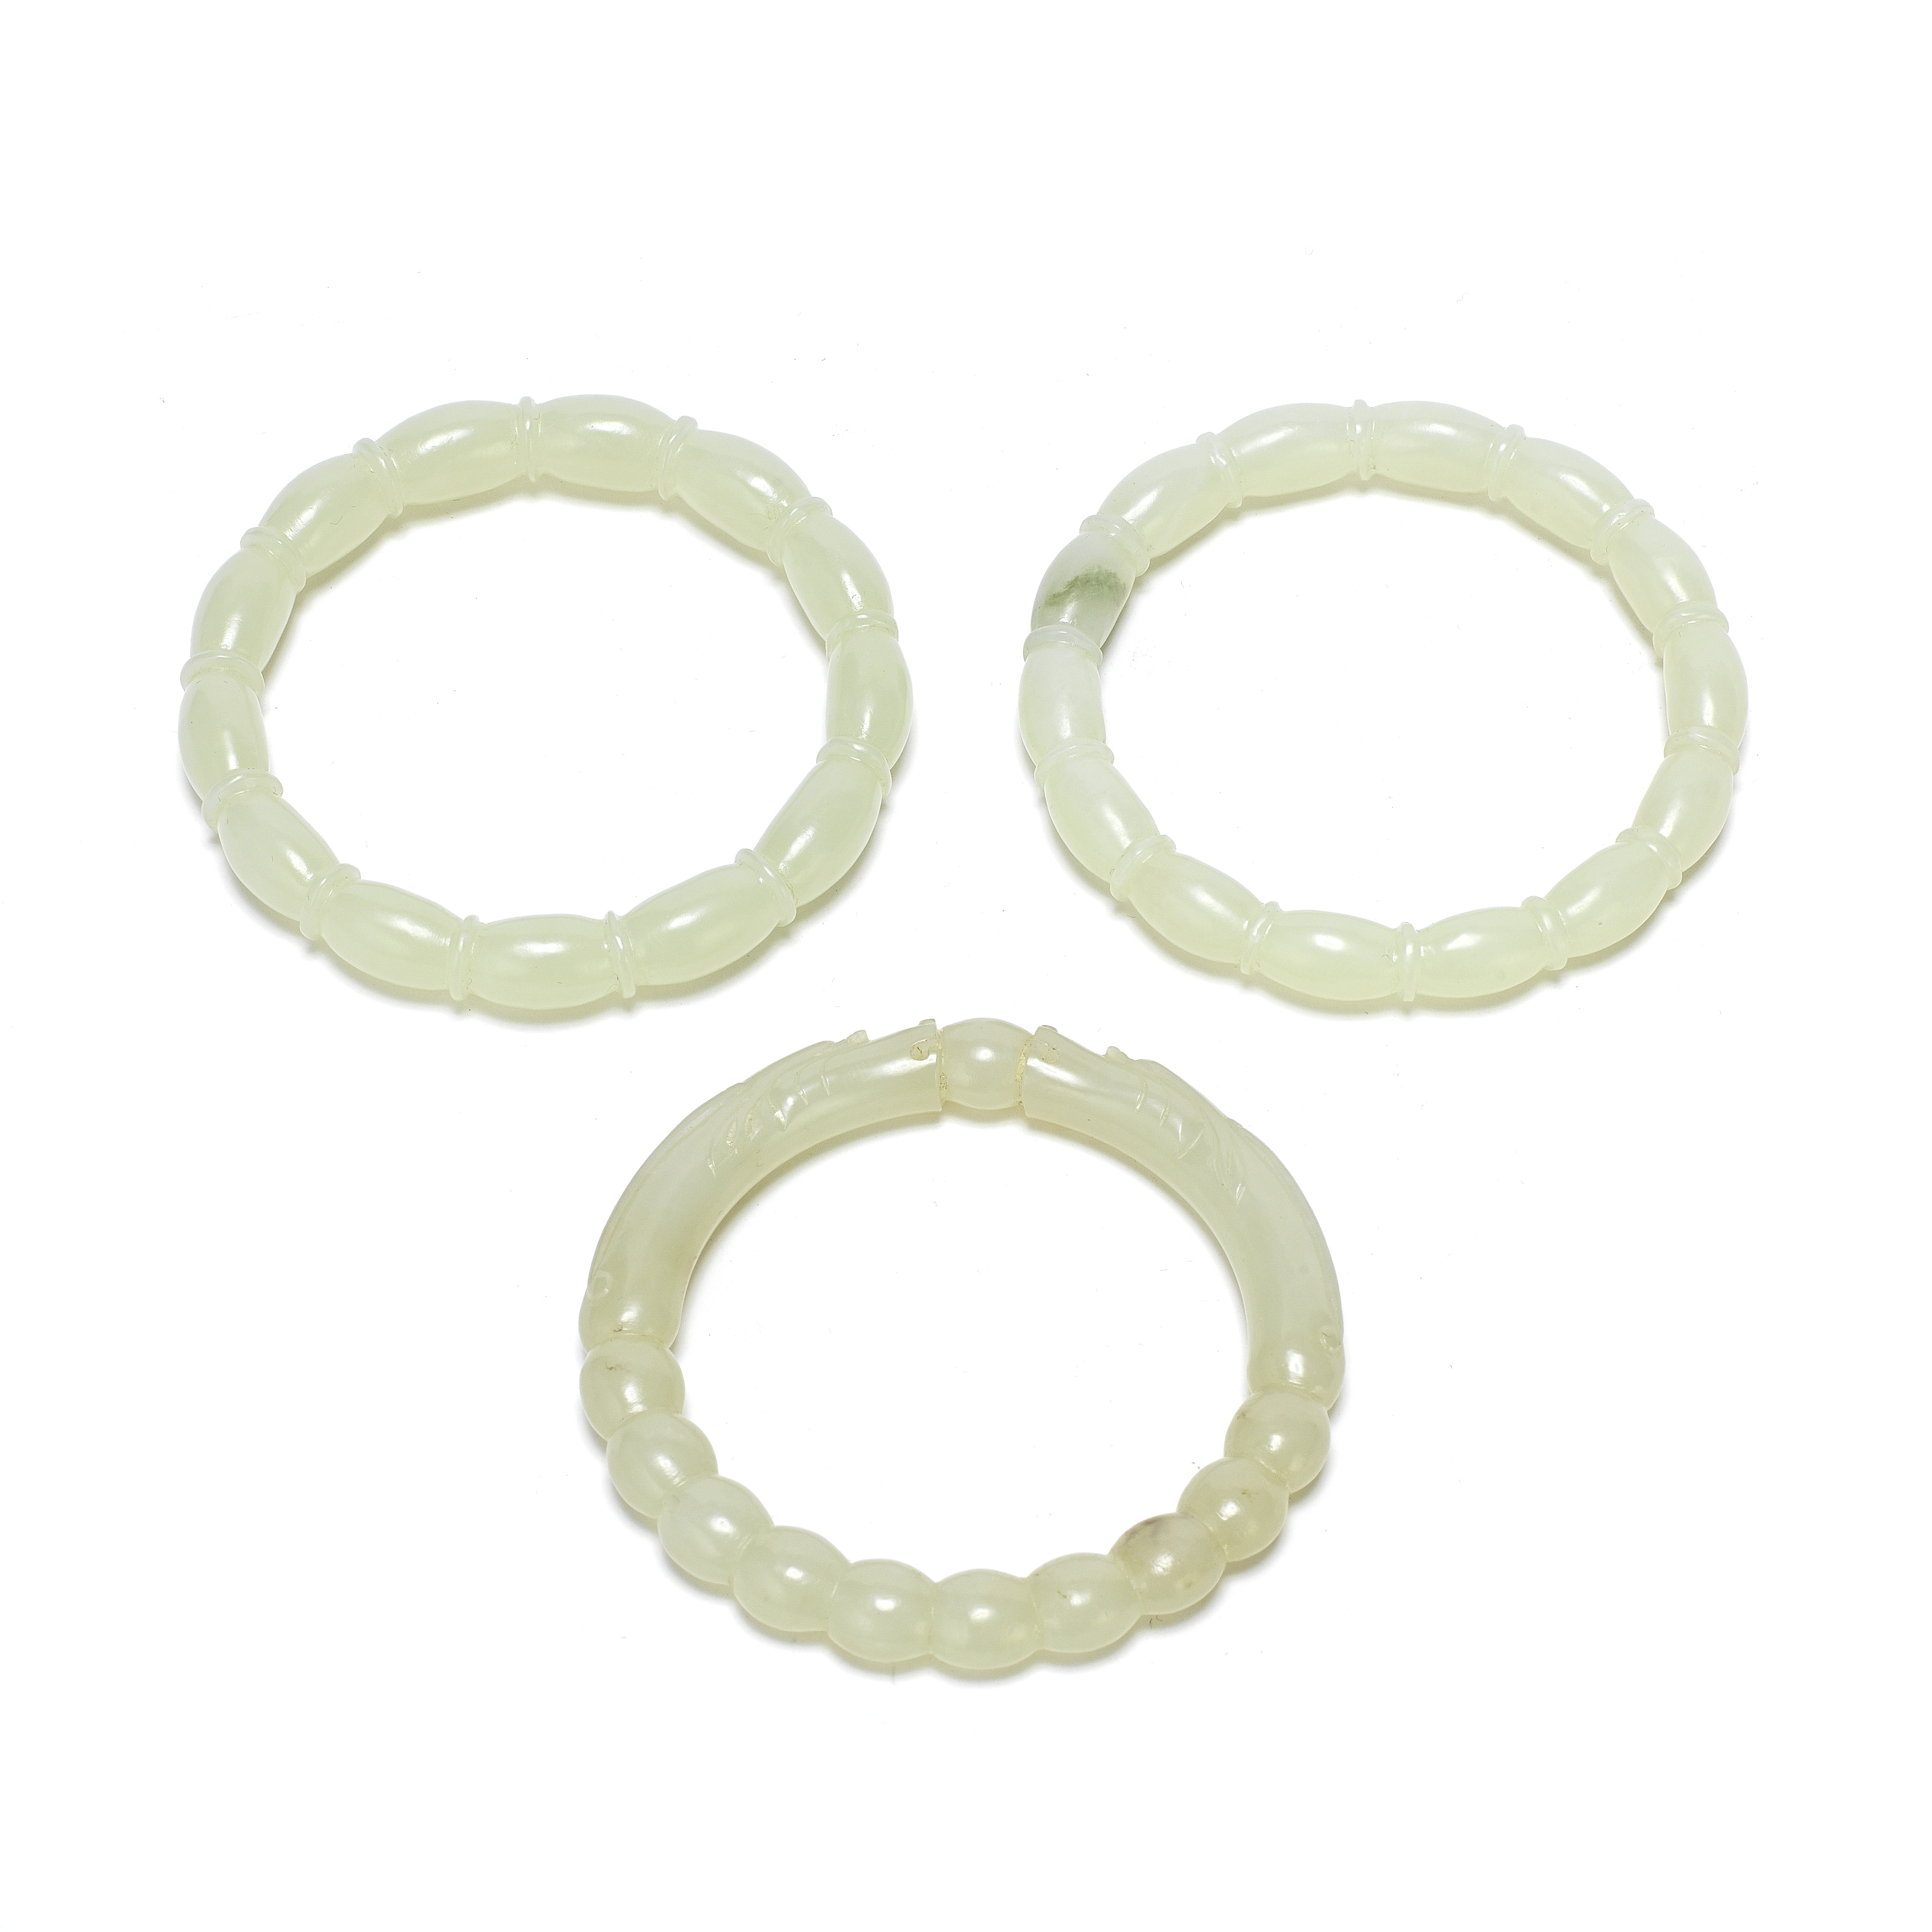 A GROUP OF THREE PALE JADE BANGLES (3)